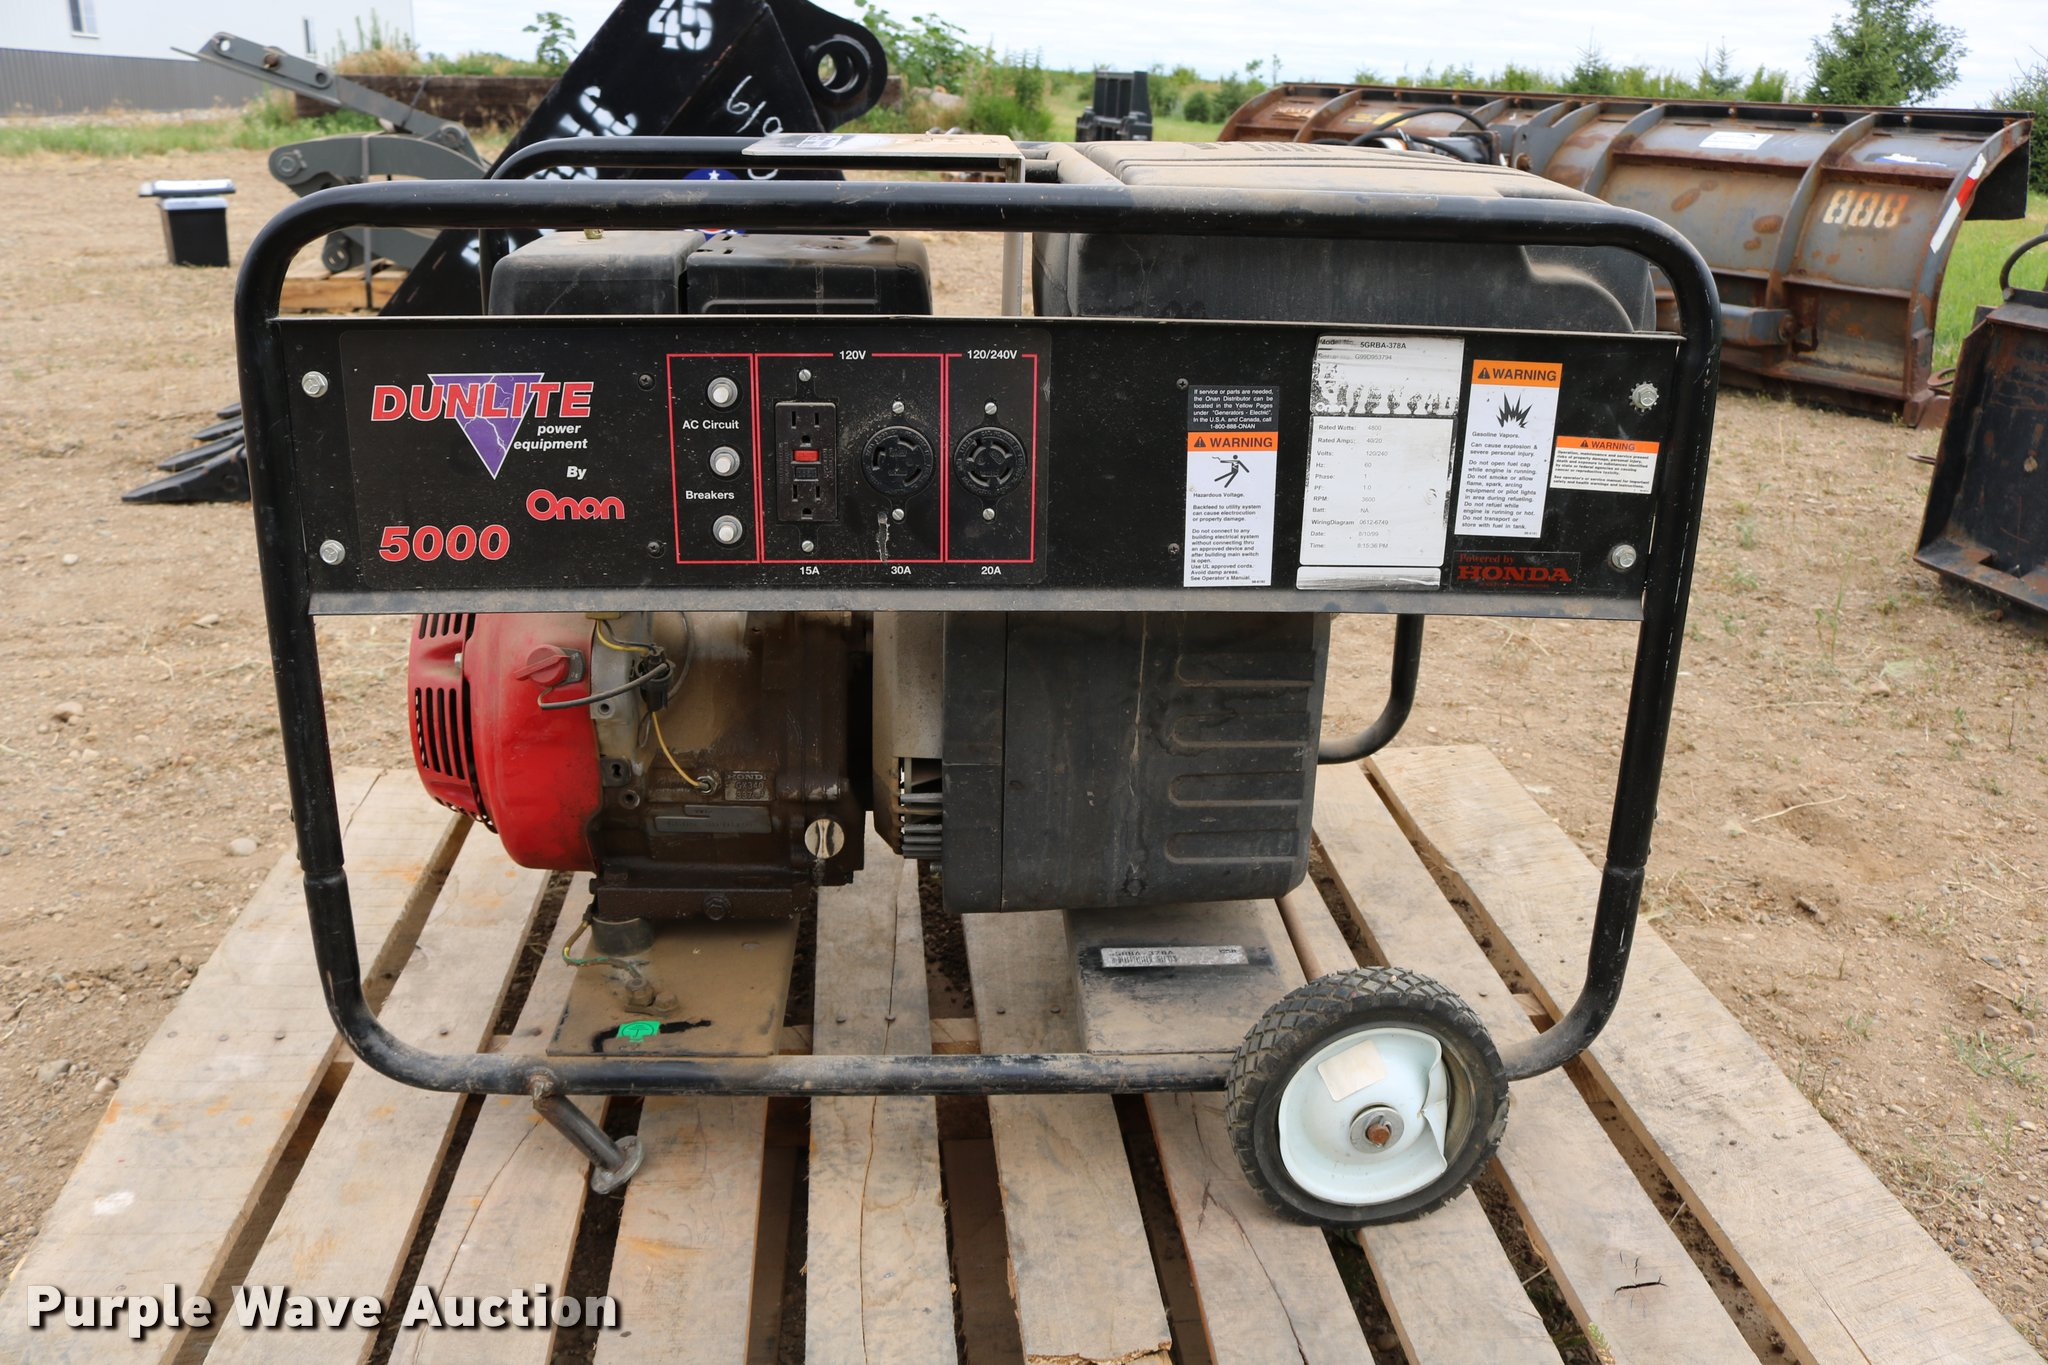 Onan dunlite power equipment 5grba 378a generator item dm9 full size in new window cheapraybanclubmaster Image collections